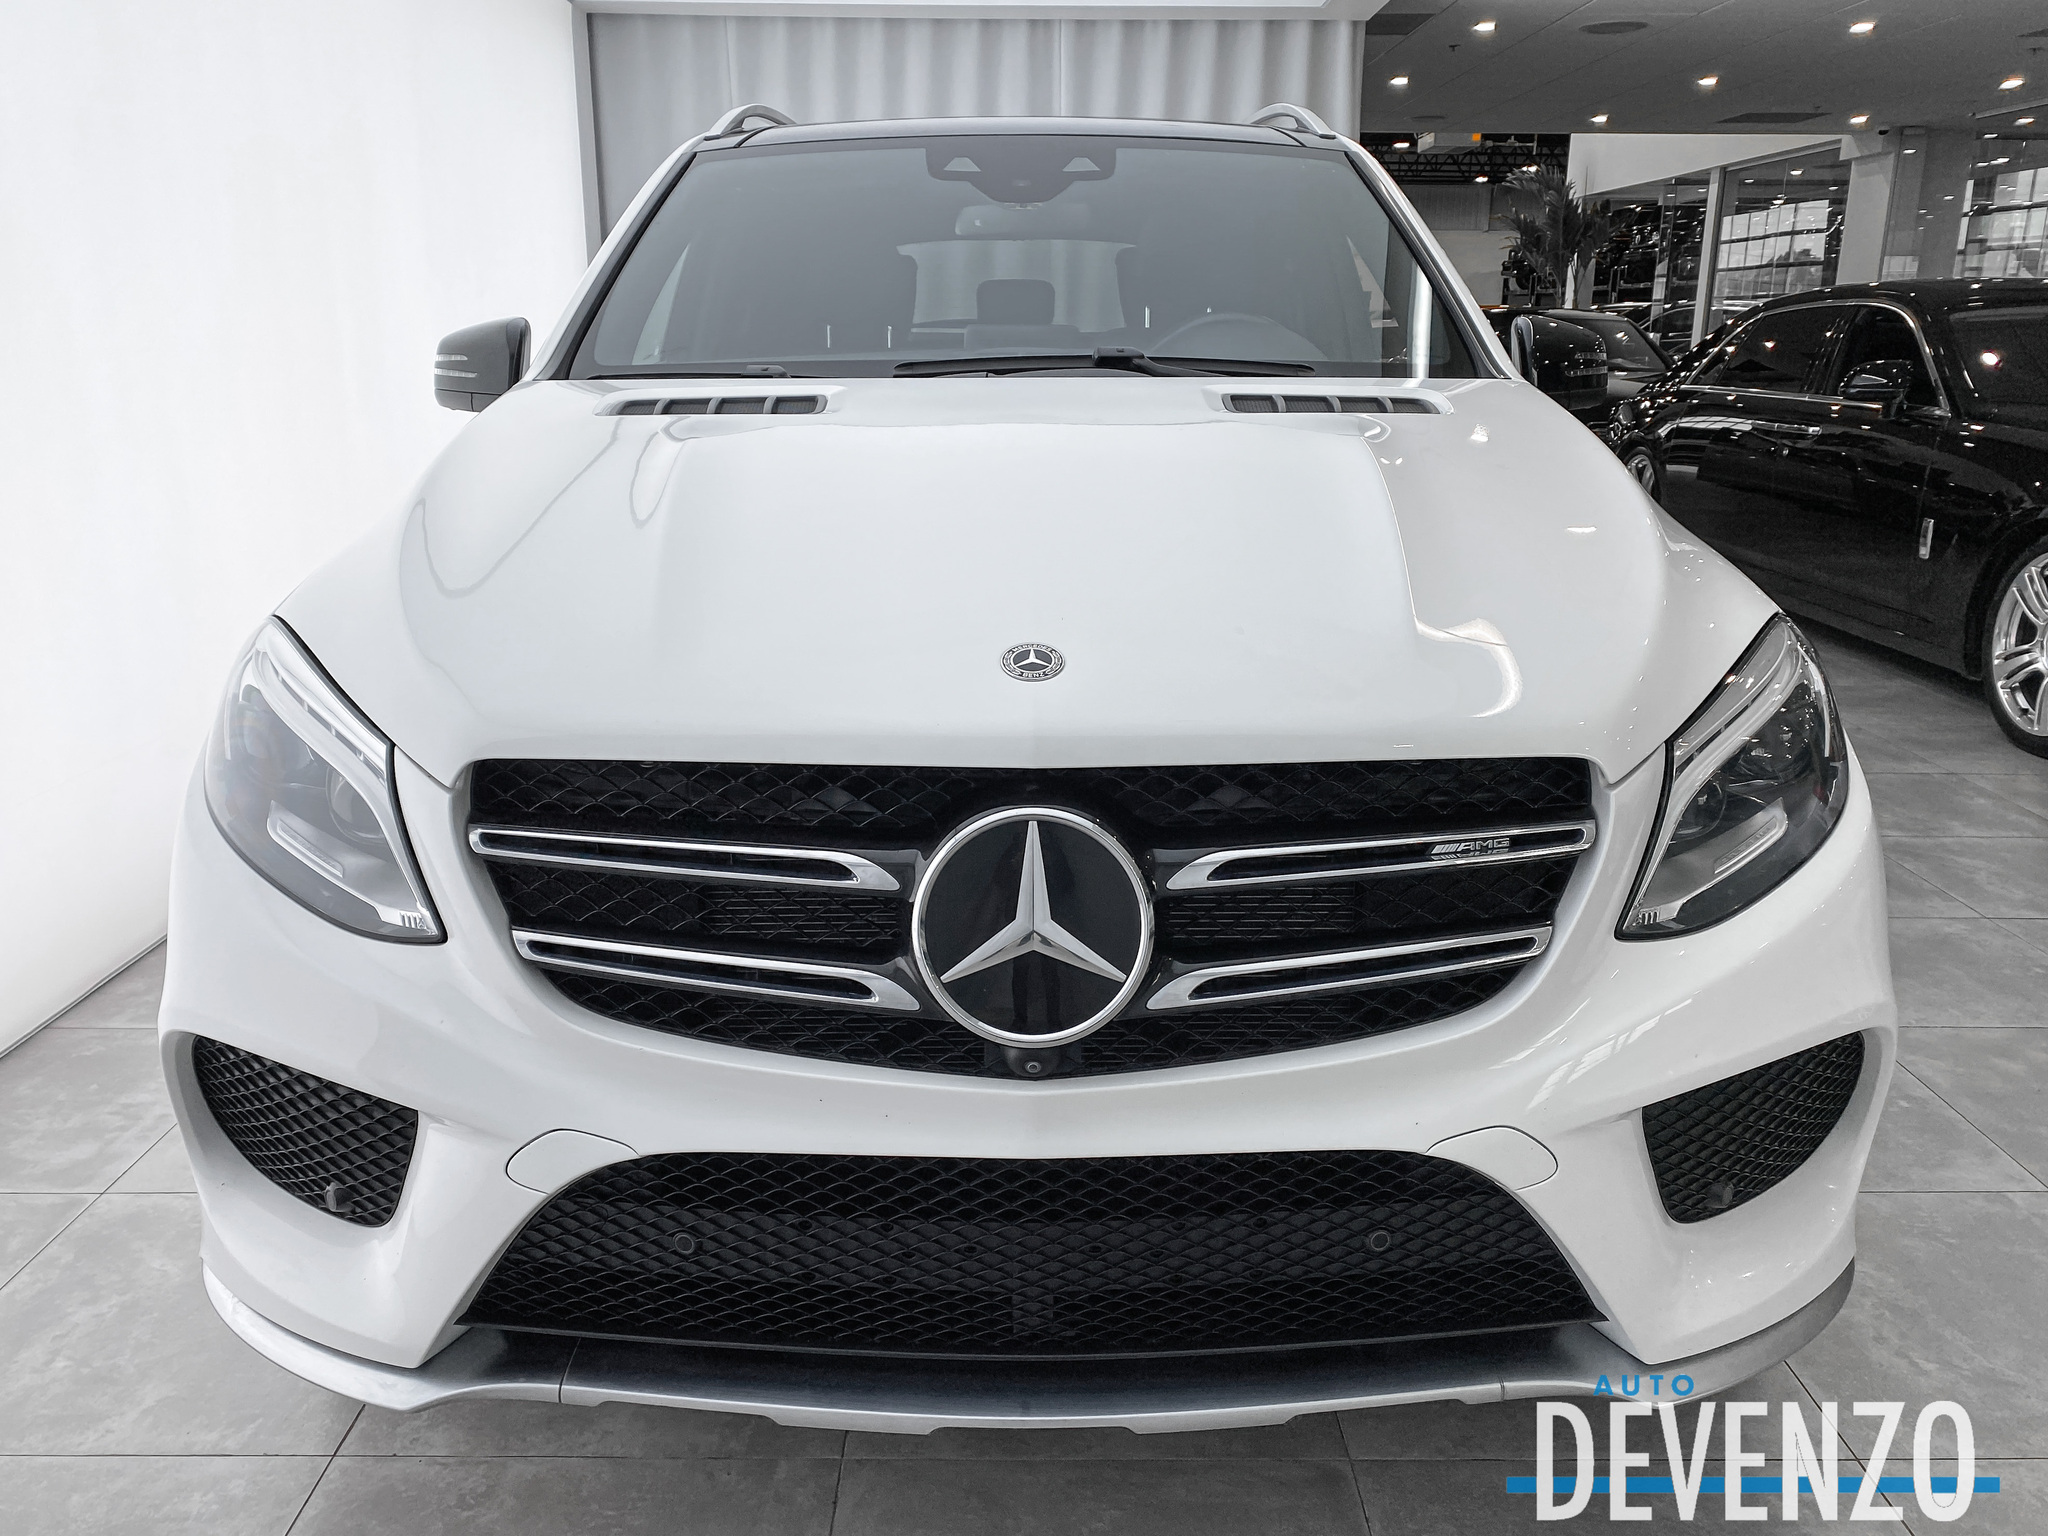 2018 Mercedes-Benz GLE-Class AMG GLE43 4MATIC 385HP INTELLIGENT DRIVE PACK complet